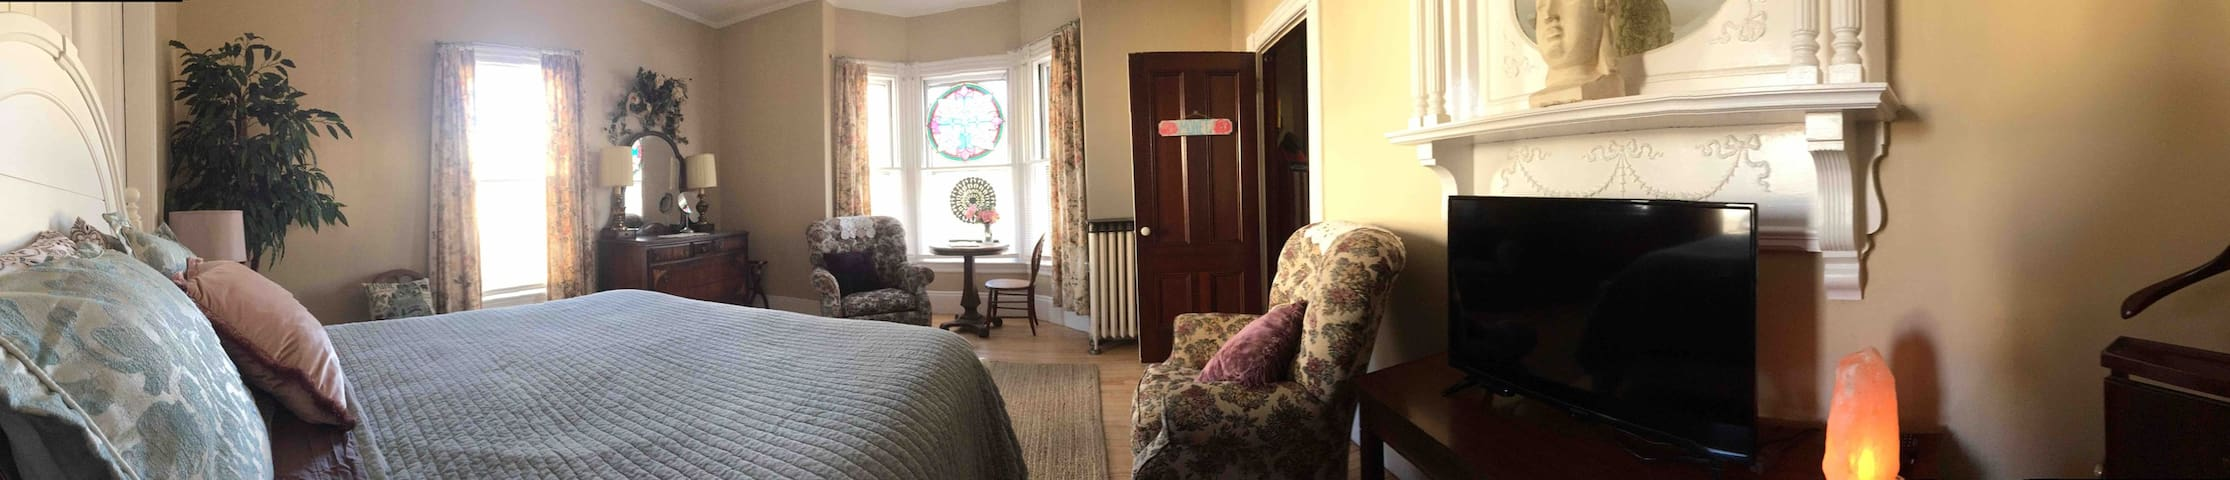 Pano view of room Monet